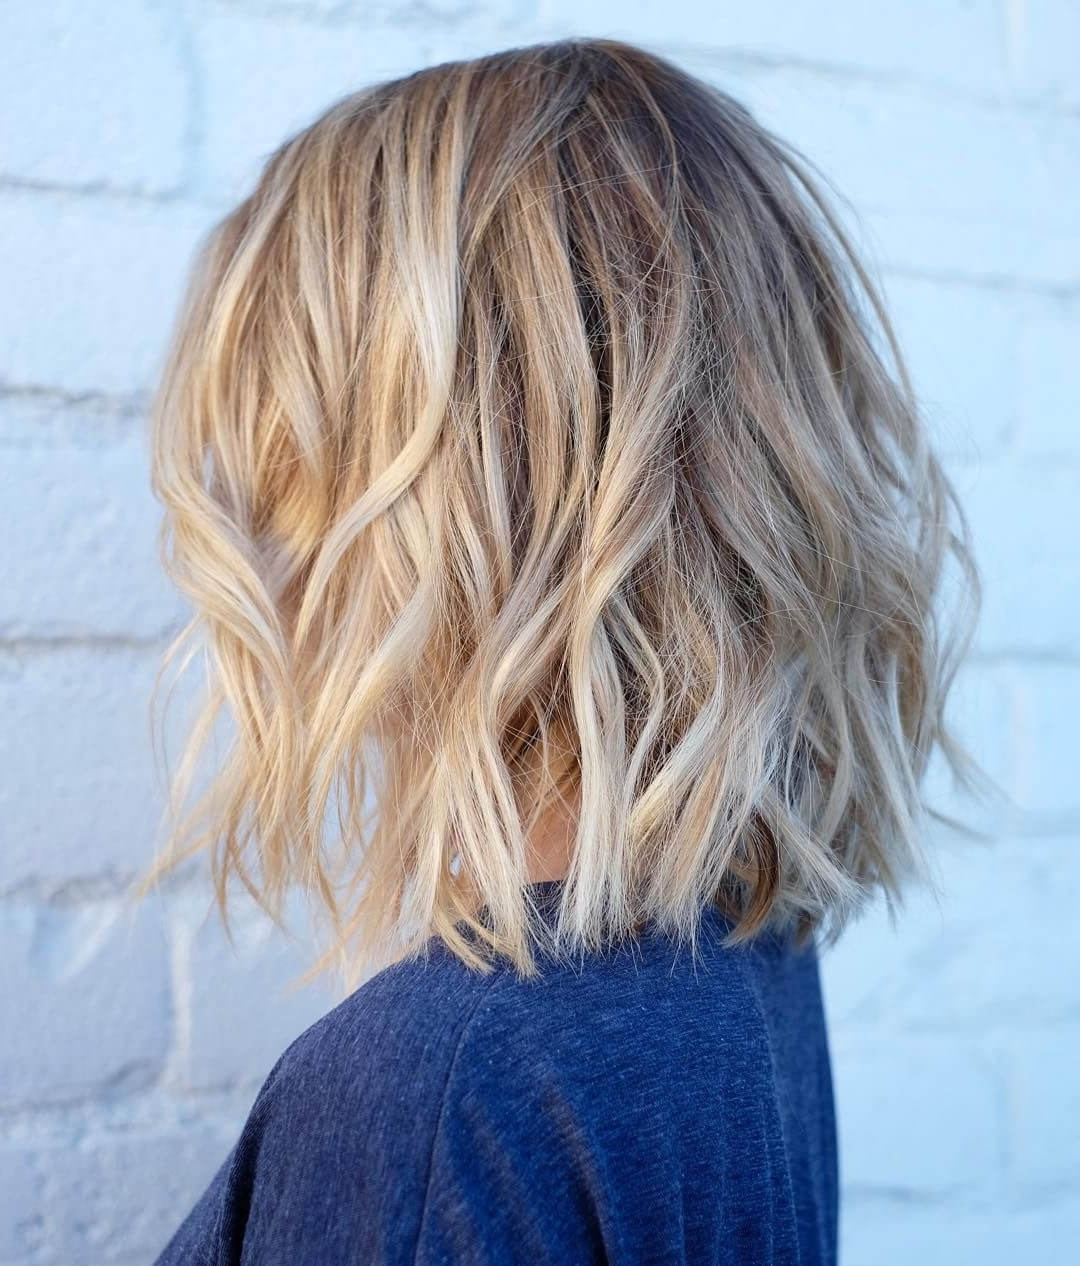 50 Fresh Short Blonde Hair Ideas To Update Your Style In 2018 Within Well Known Dark Roots Blonde Hairstyles With Honey Highlights (View 6 of 20)